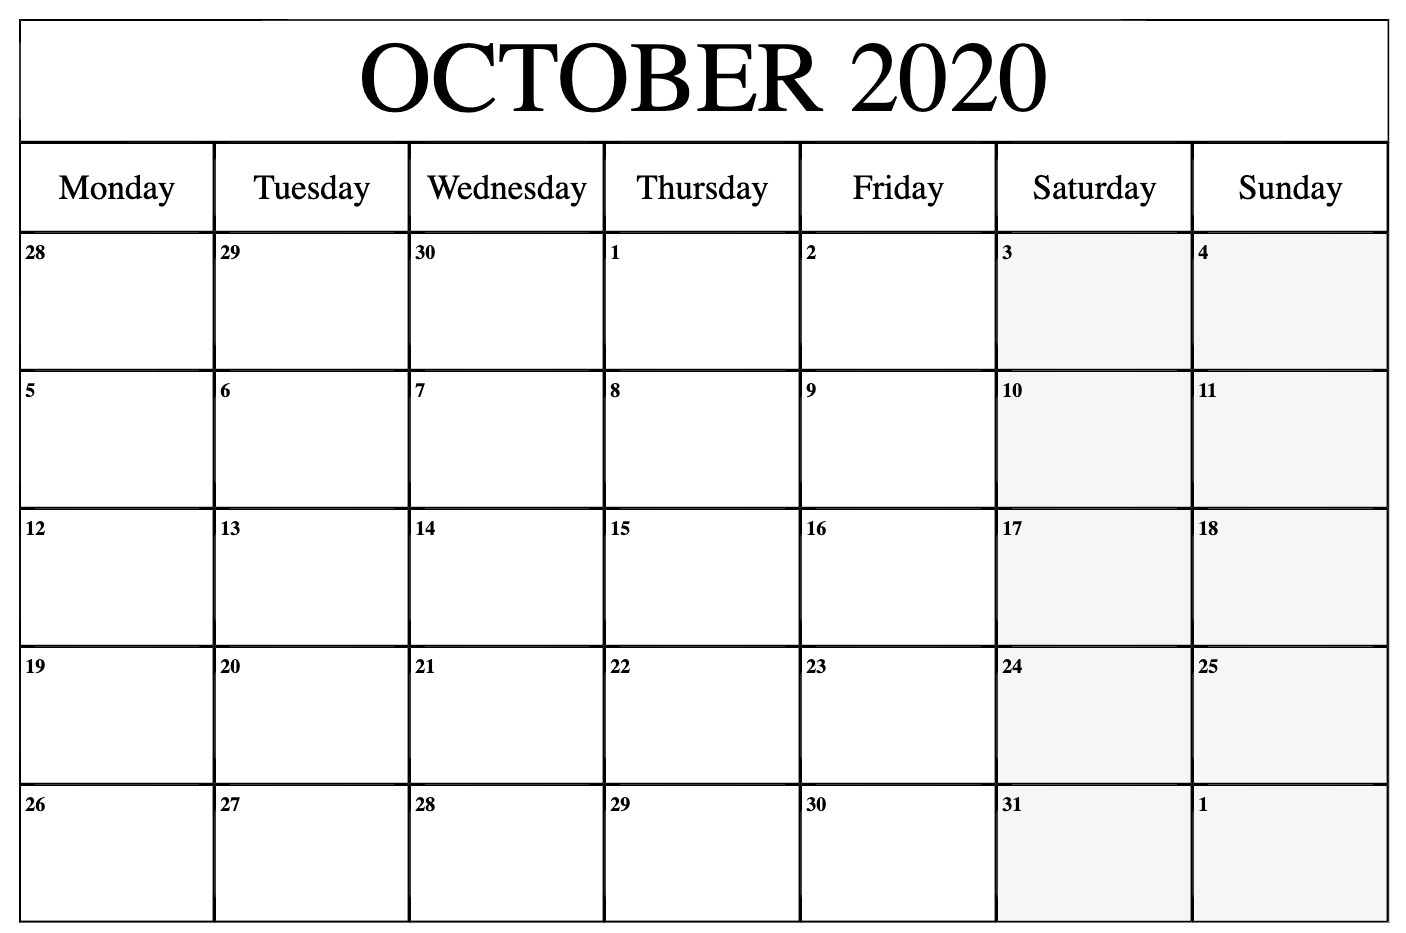 October 2020 Calendar Template Word, Pdf, Excel Format